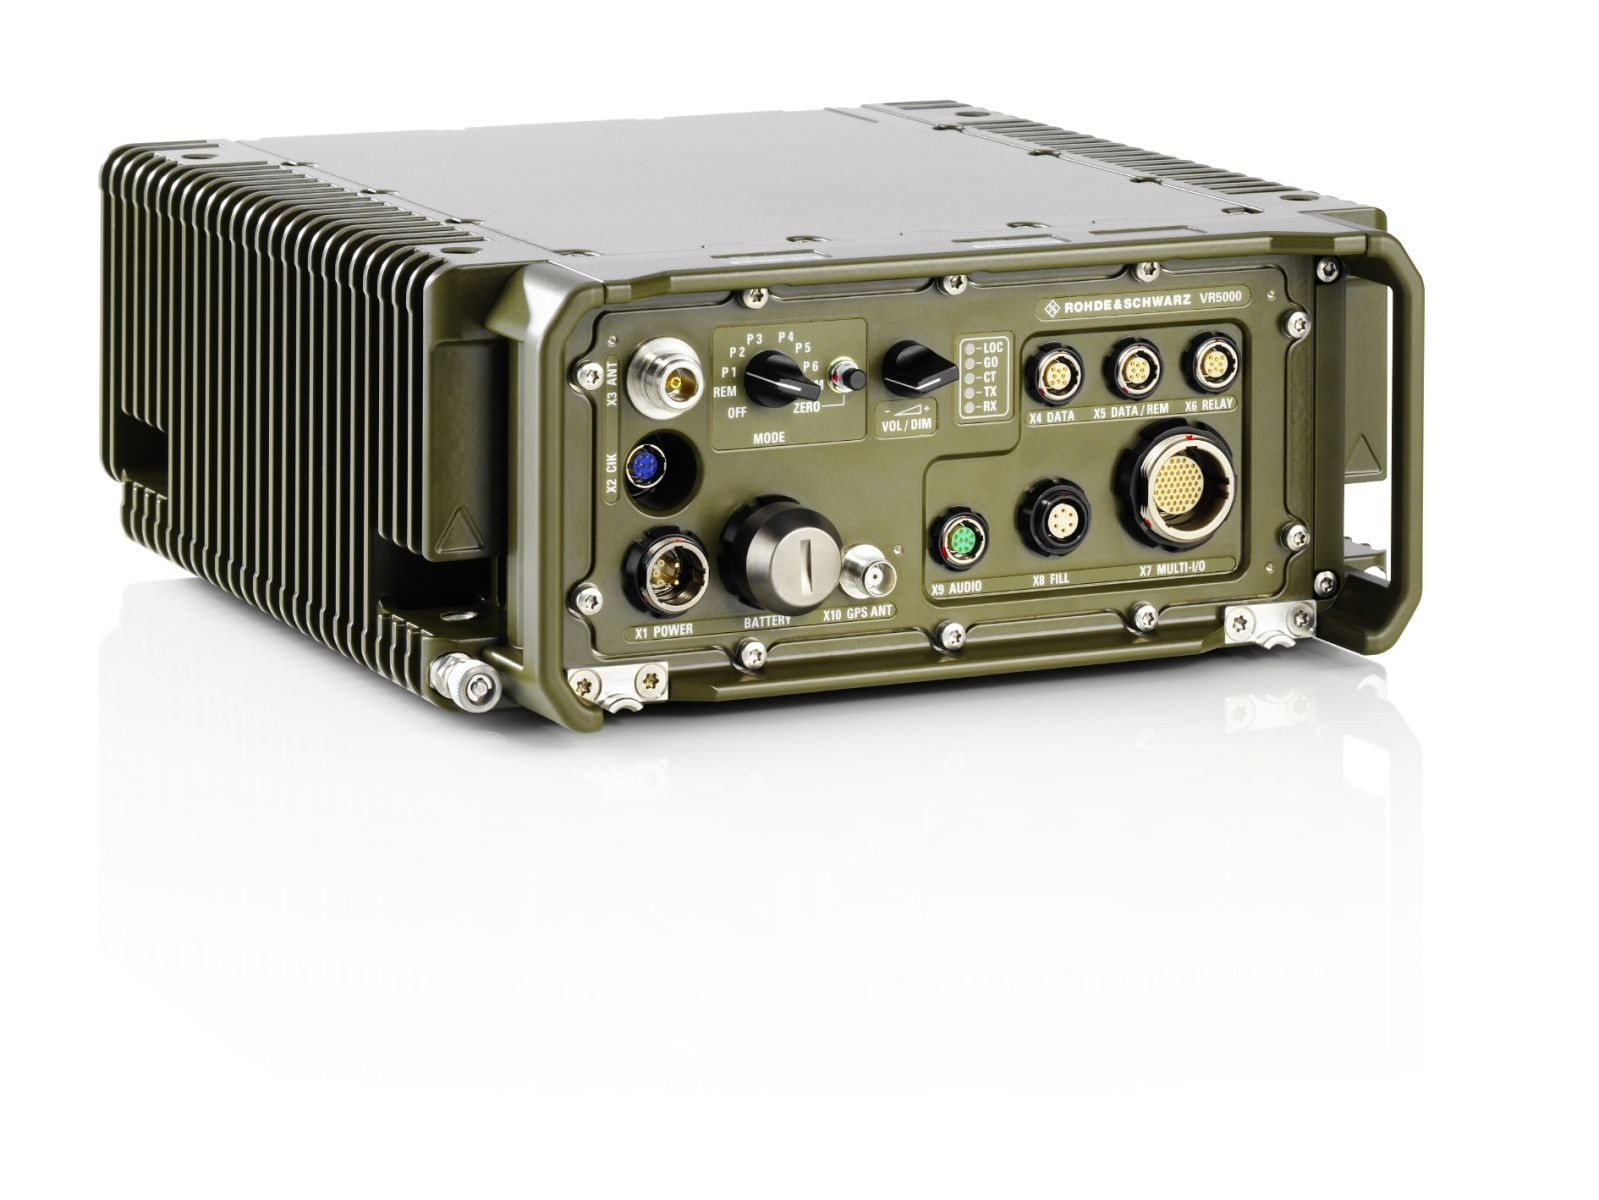 Product Announcements Signal Magazine 22153 Watt Low Frequency Amplifier Based Ka2206 Flexible Secure Sca The New Rssdtr Software Defined Tactical Radio Enables High Data Rate Jam Resistant Communications In Network Centric